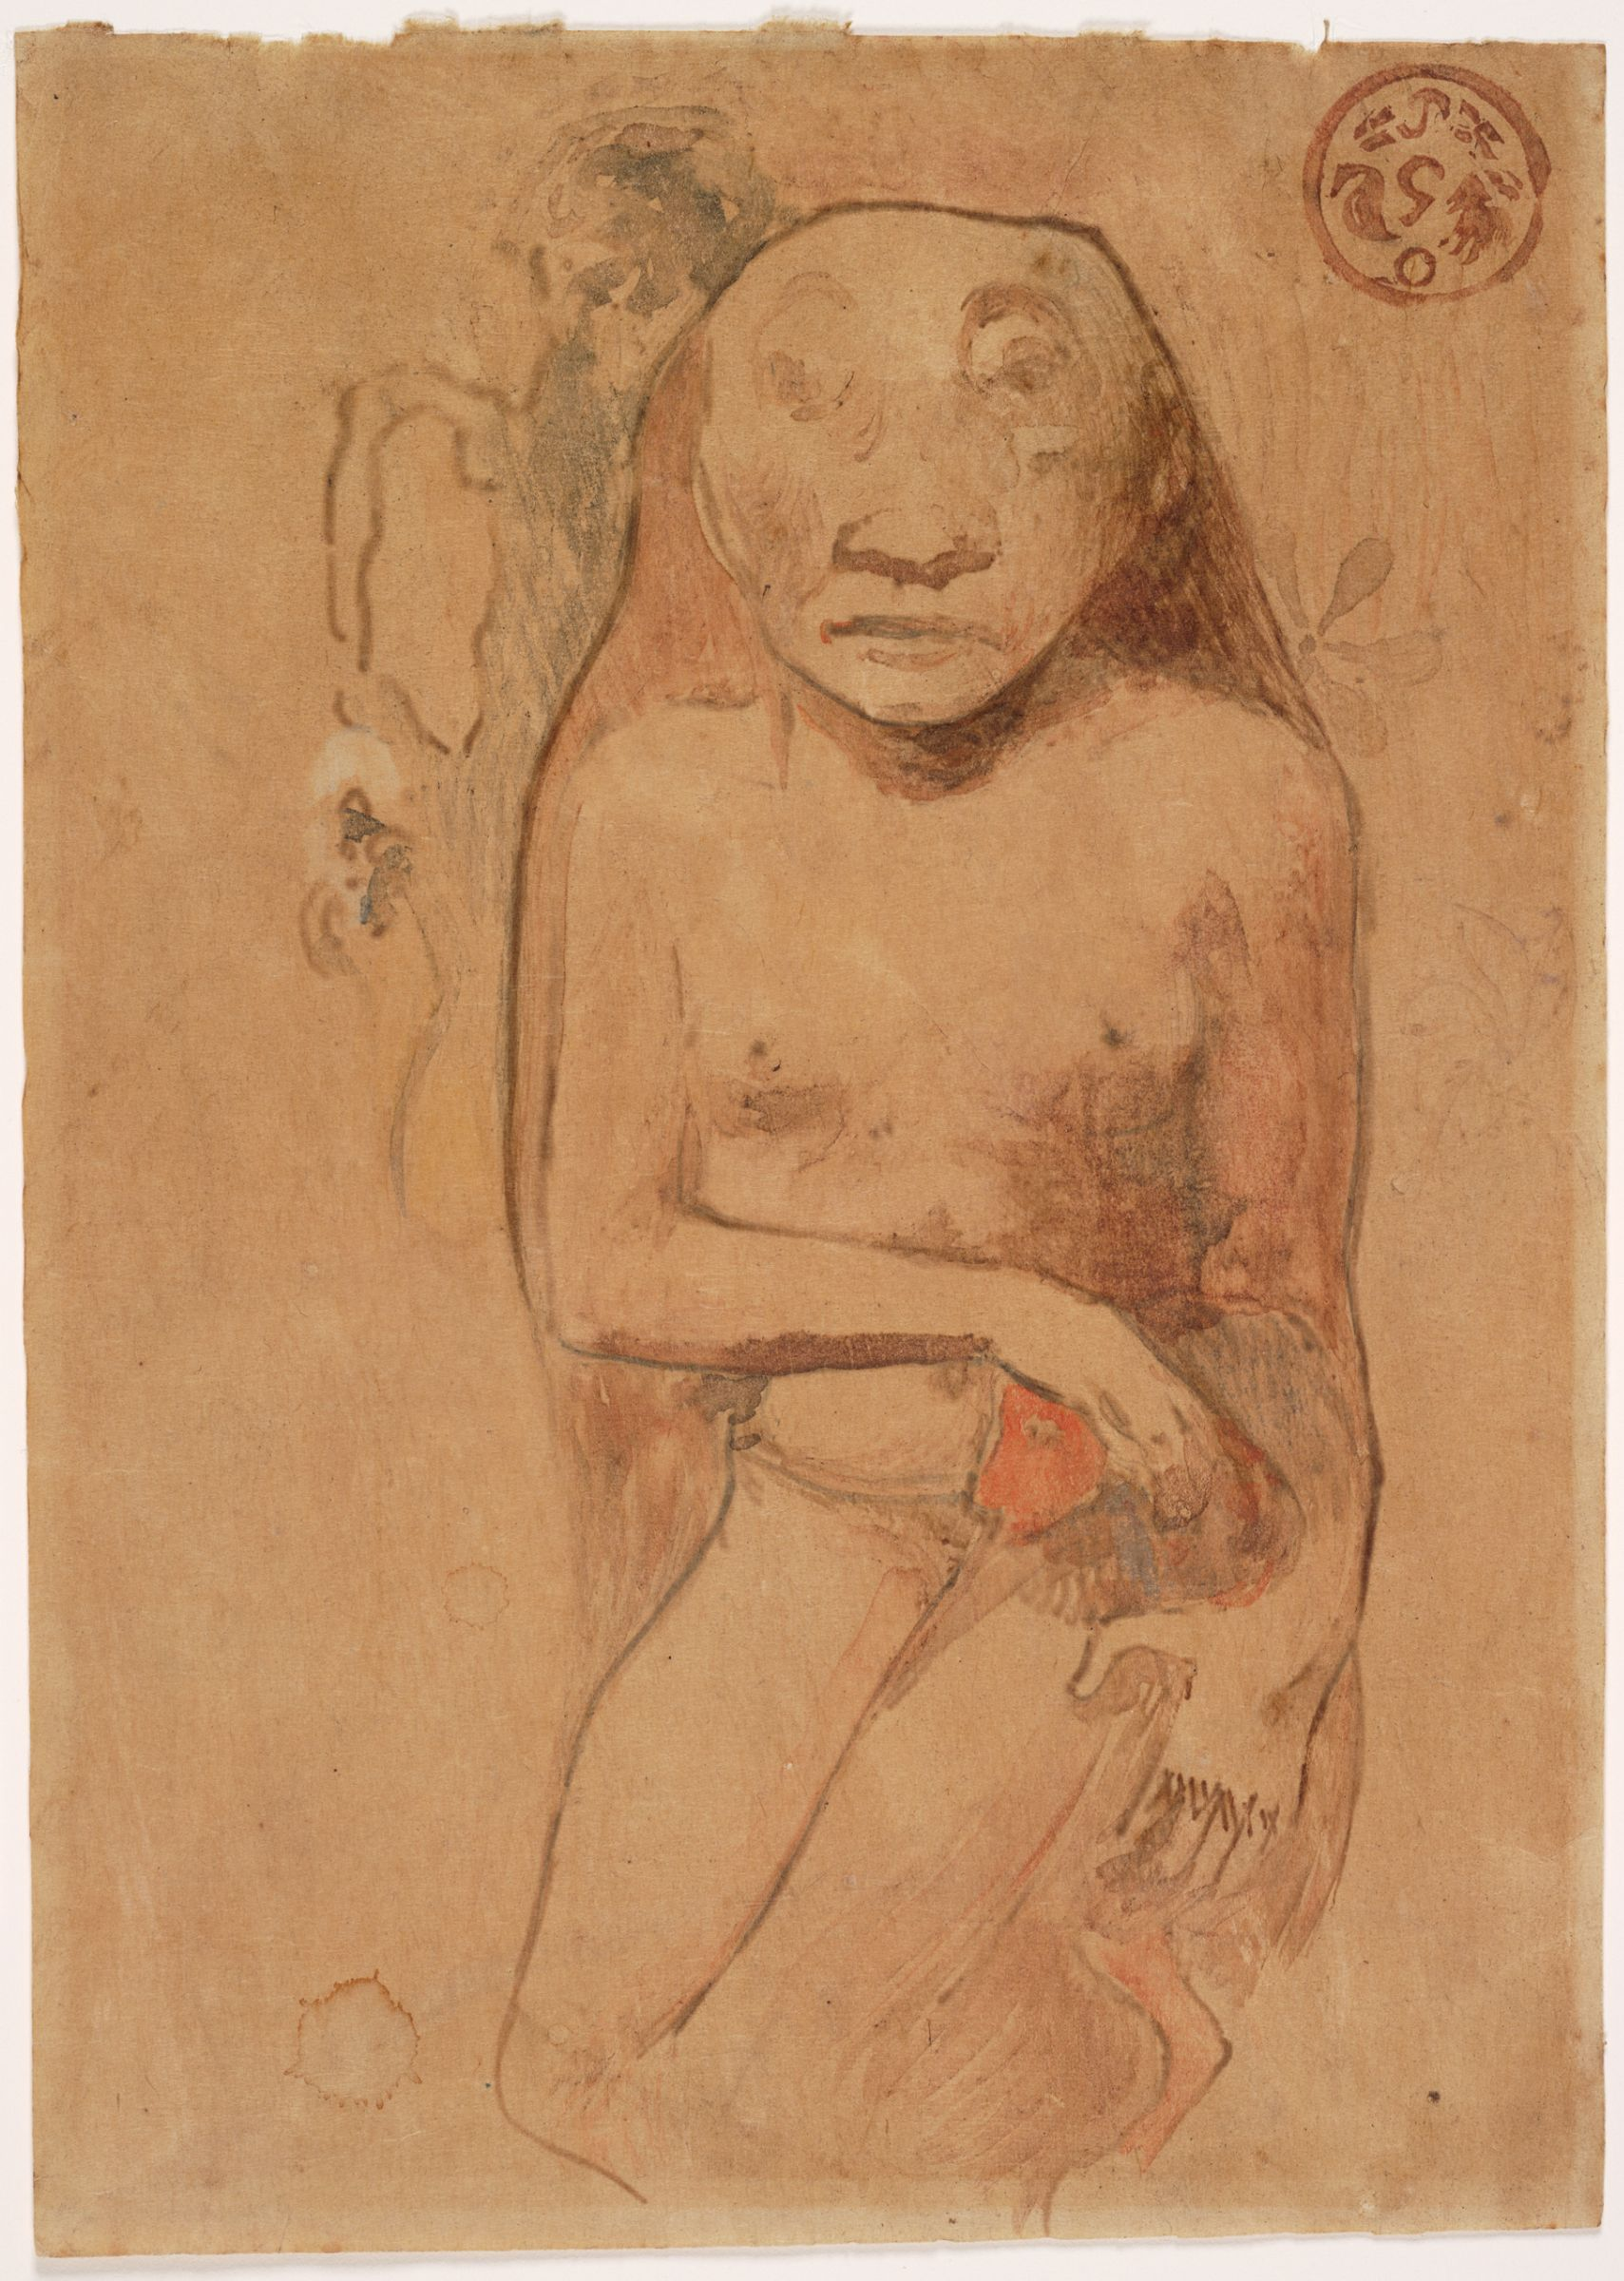 Paul gauguin french oviri watercolor trace monotype on tan asian paper x cm